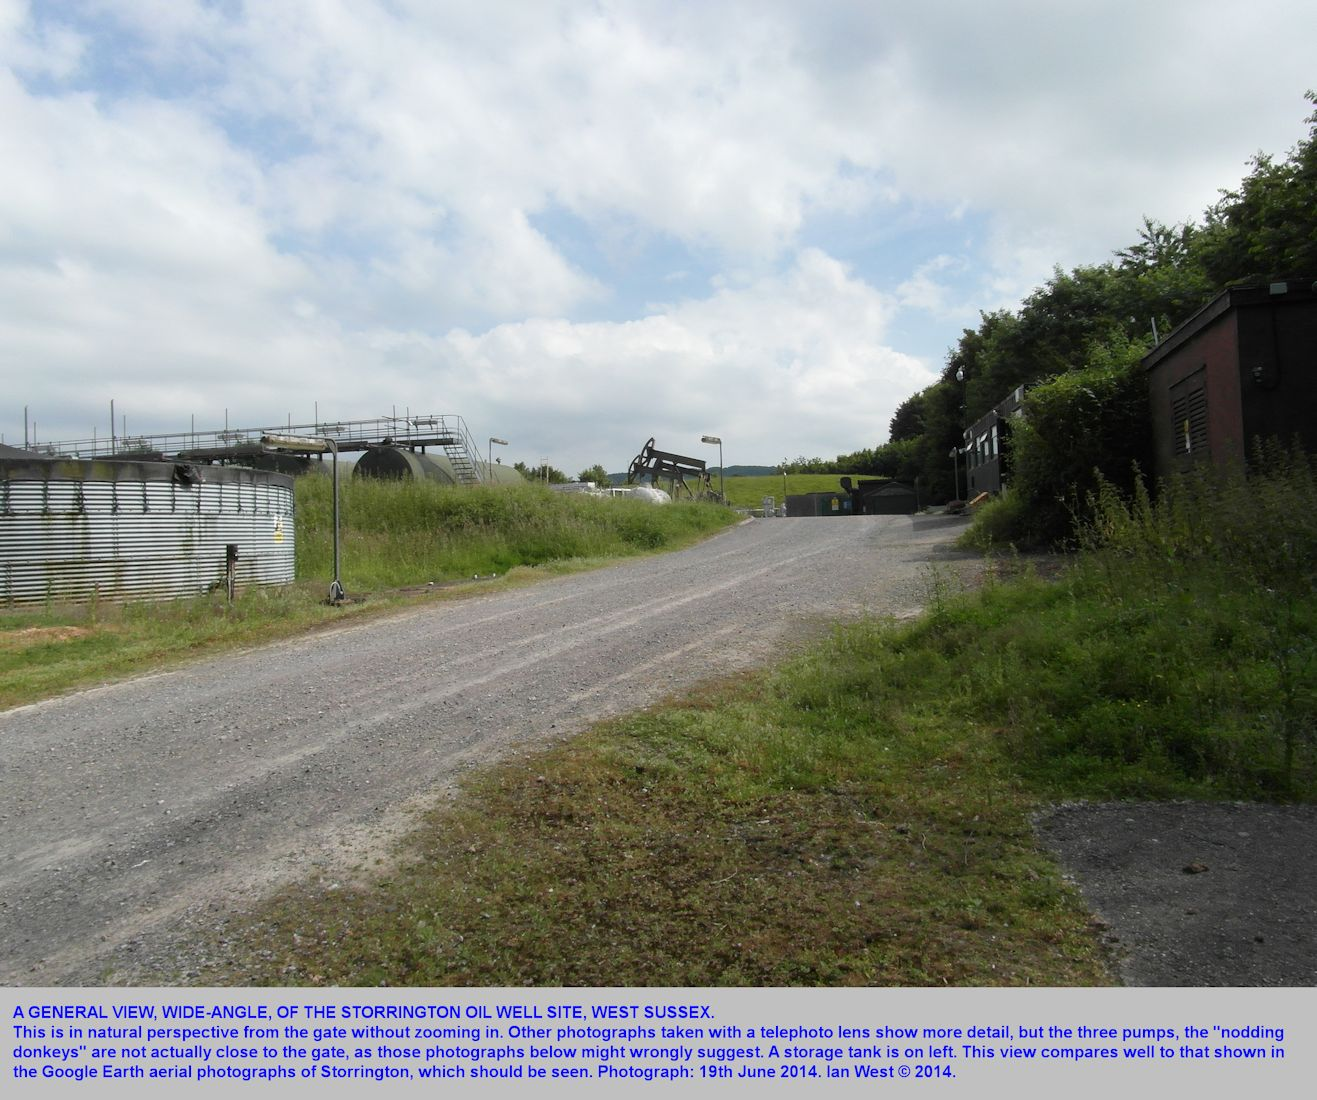 A general view, wide-angle, of the Storrington oil wellsite, West Sussex, 19th June 2014